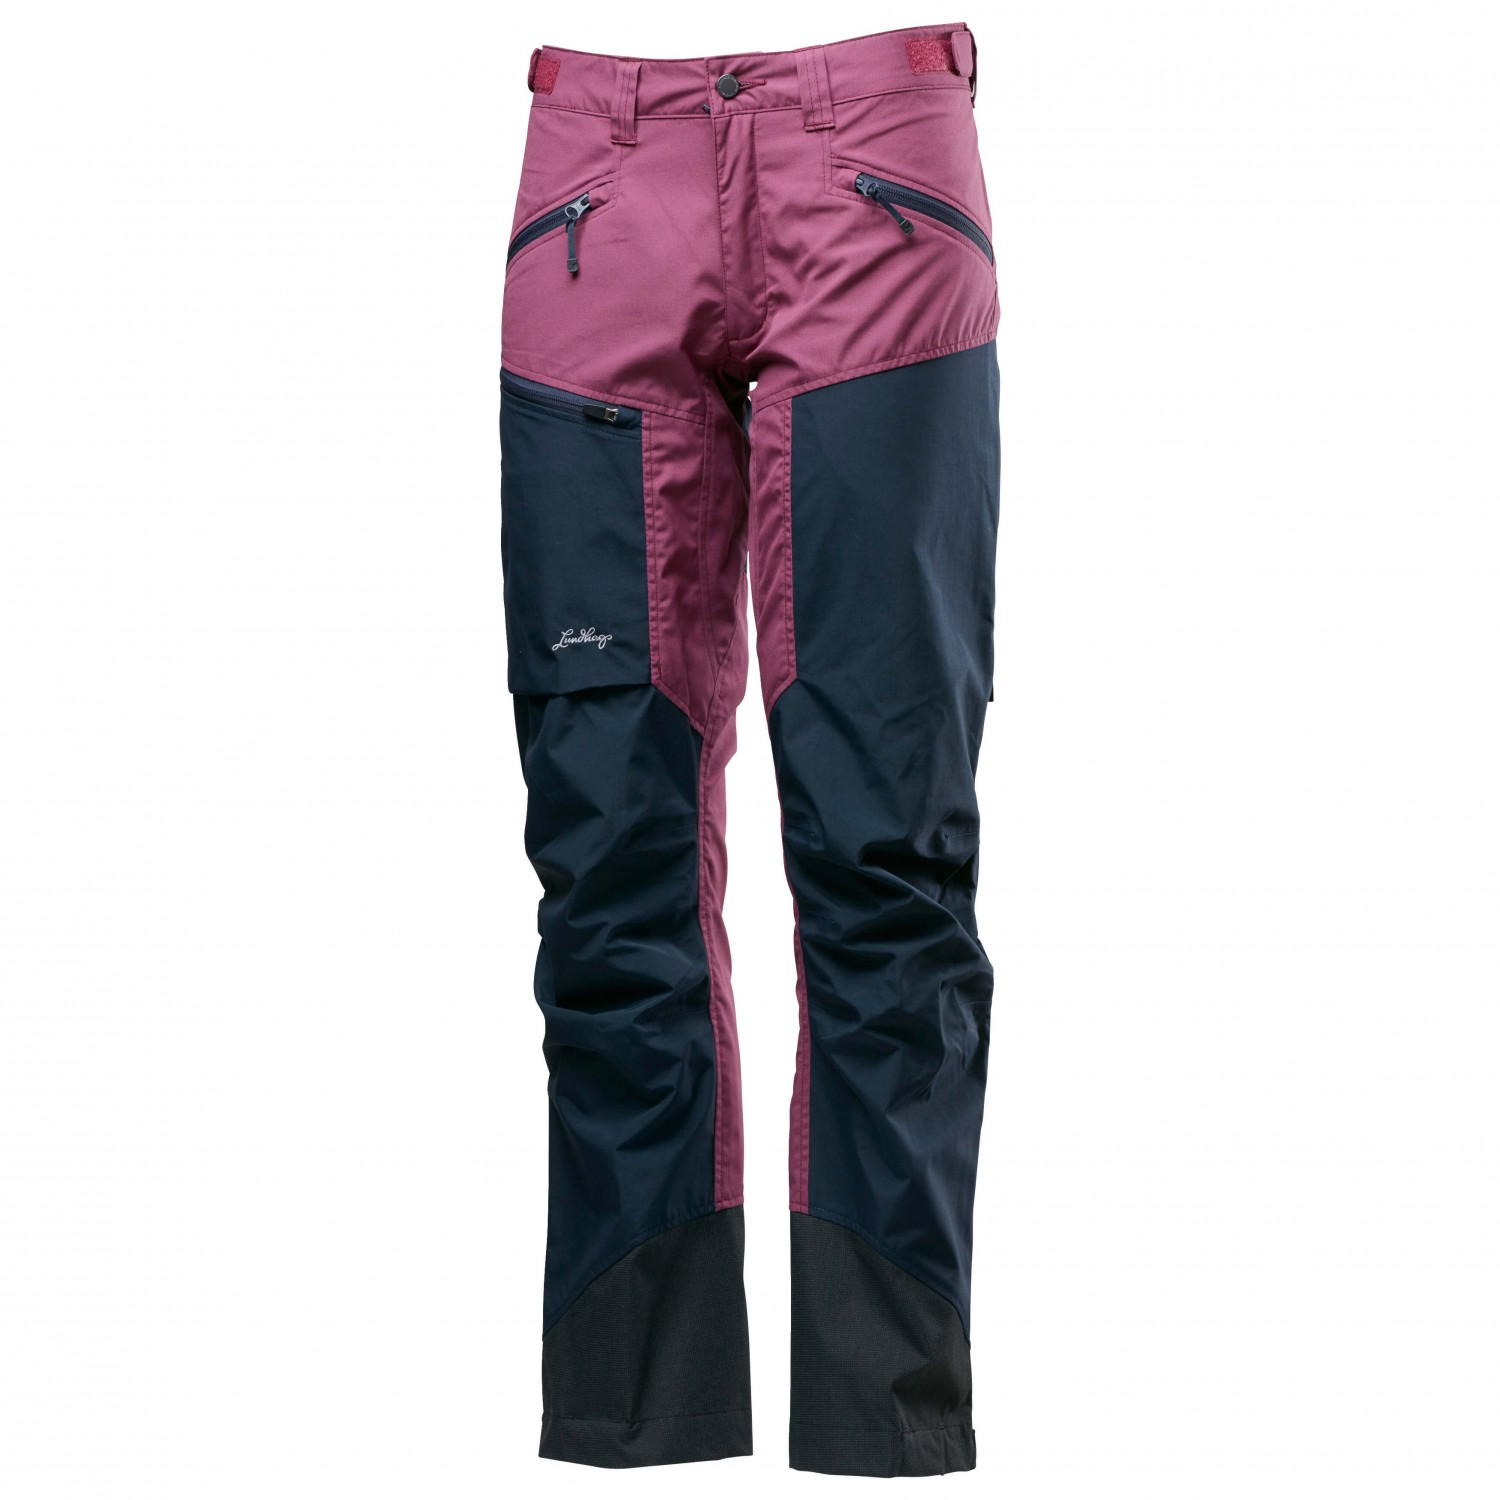 Perfect Many Outdoor Stores Sell Hiking Pants, And This Is Where You Might Find The Kind  Here Are Some Of The Big Ones To Consider Quick Dry Pants Women Who Are Traveling In Outdoor Environments, Or Just Planning To Handwash Clothing